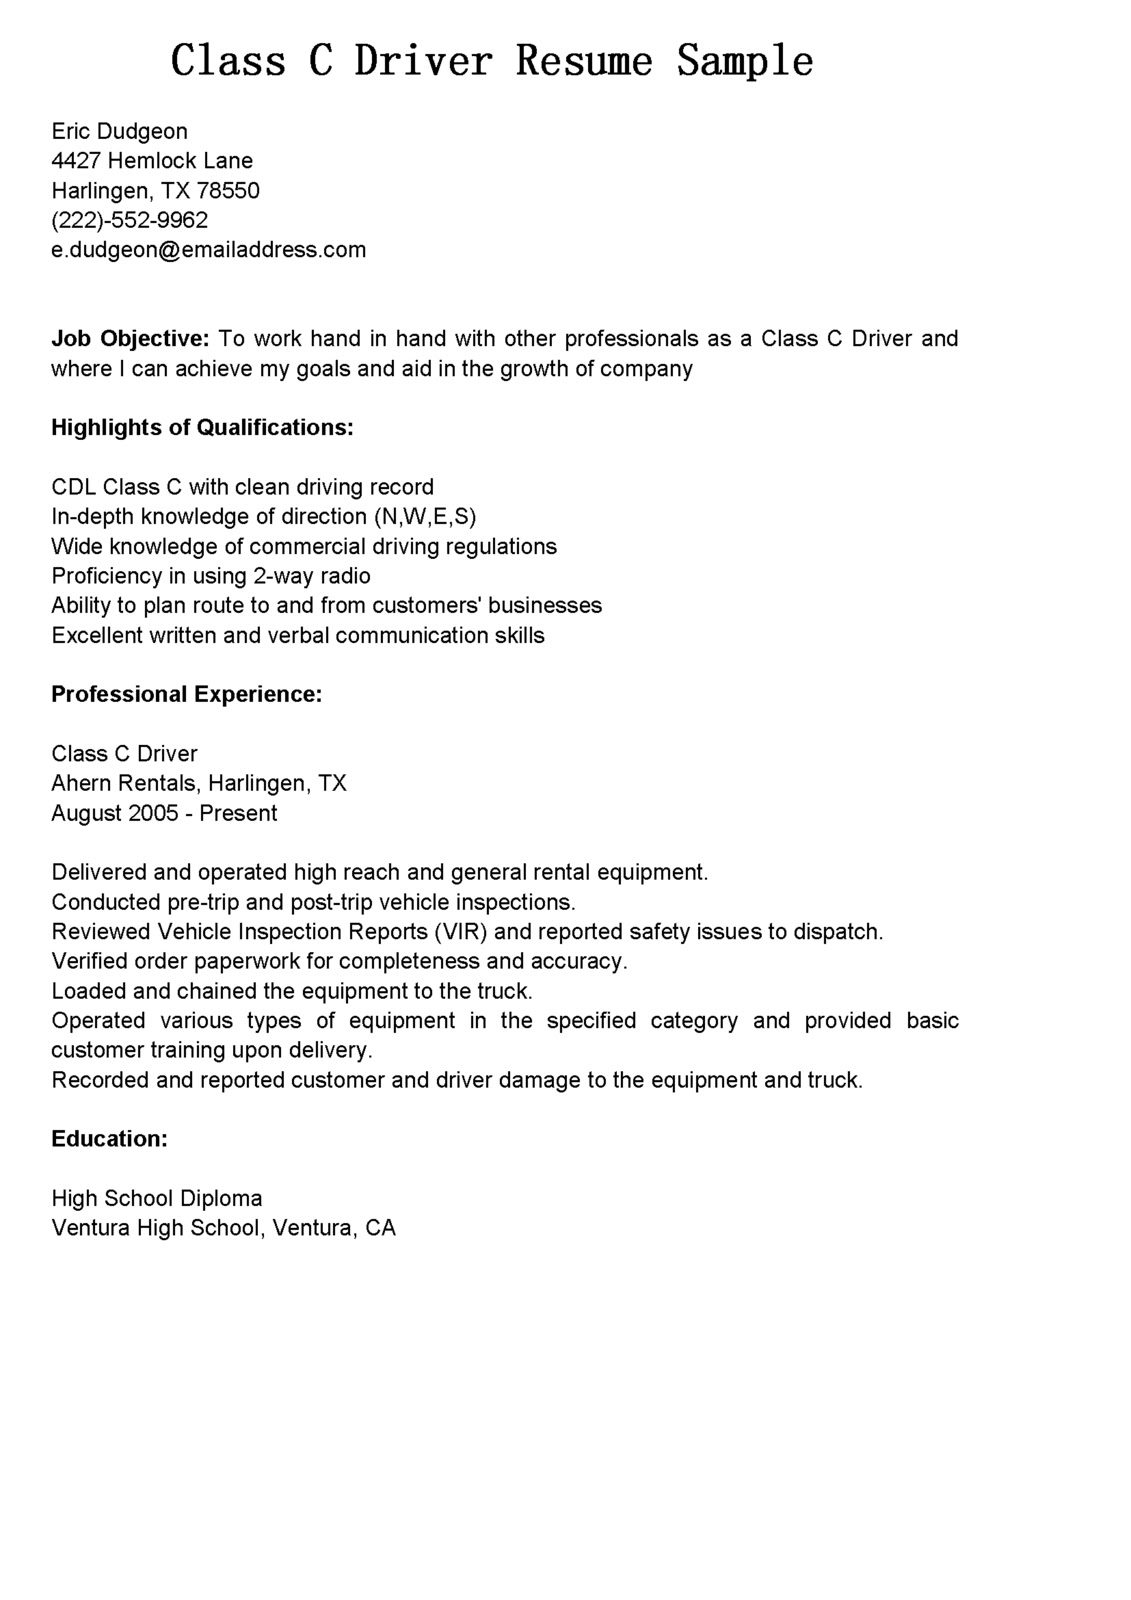 driver resumes  class c driver resume sample